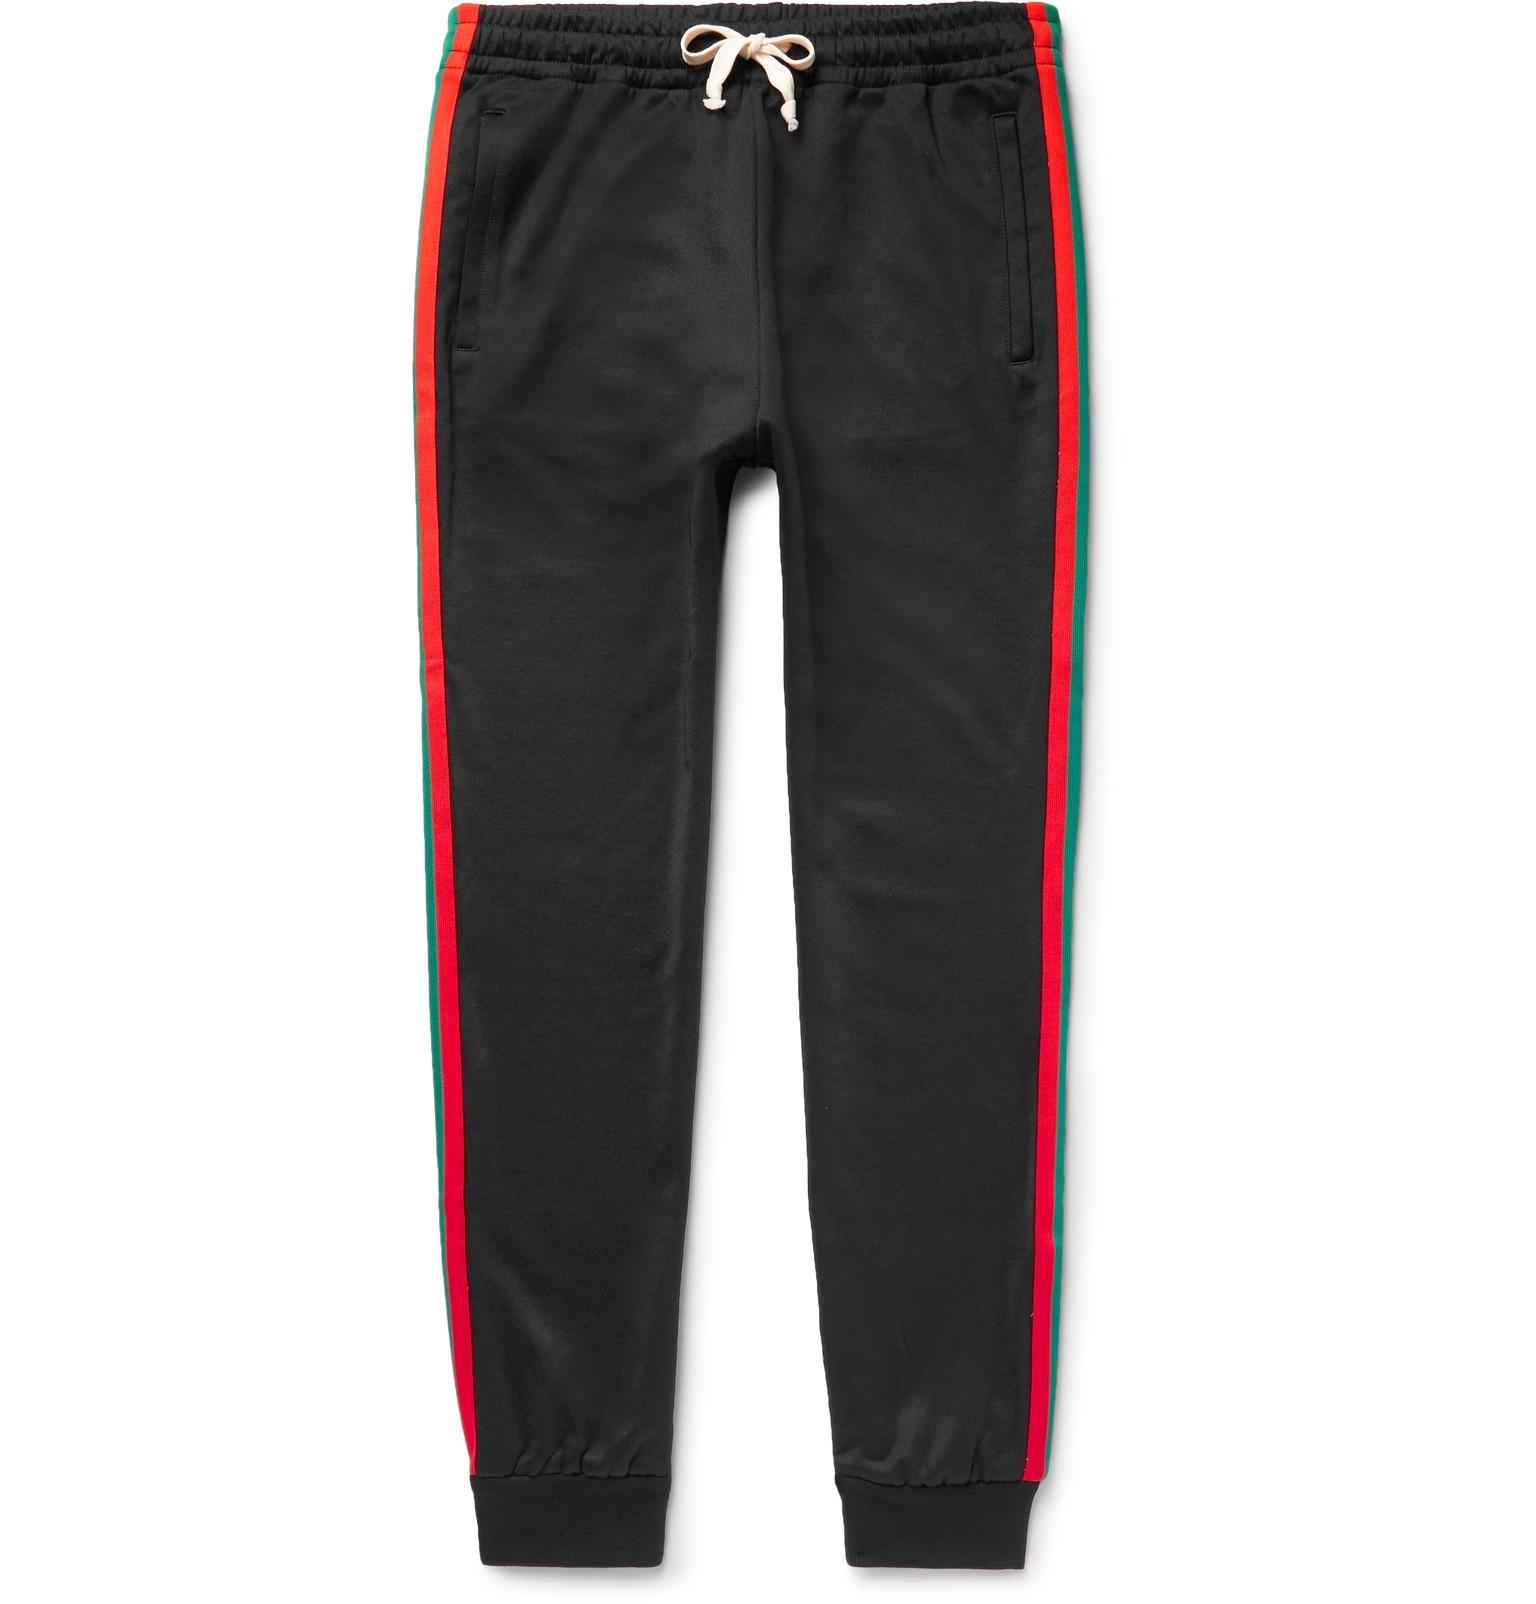 8b118097364 Gucci Tapered Webbing-trimmed Tech-jersey Sweatpants in Black for ...